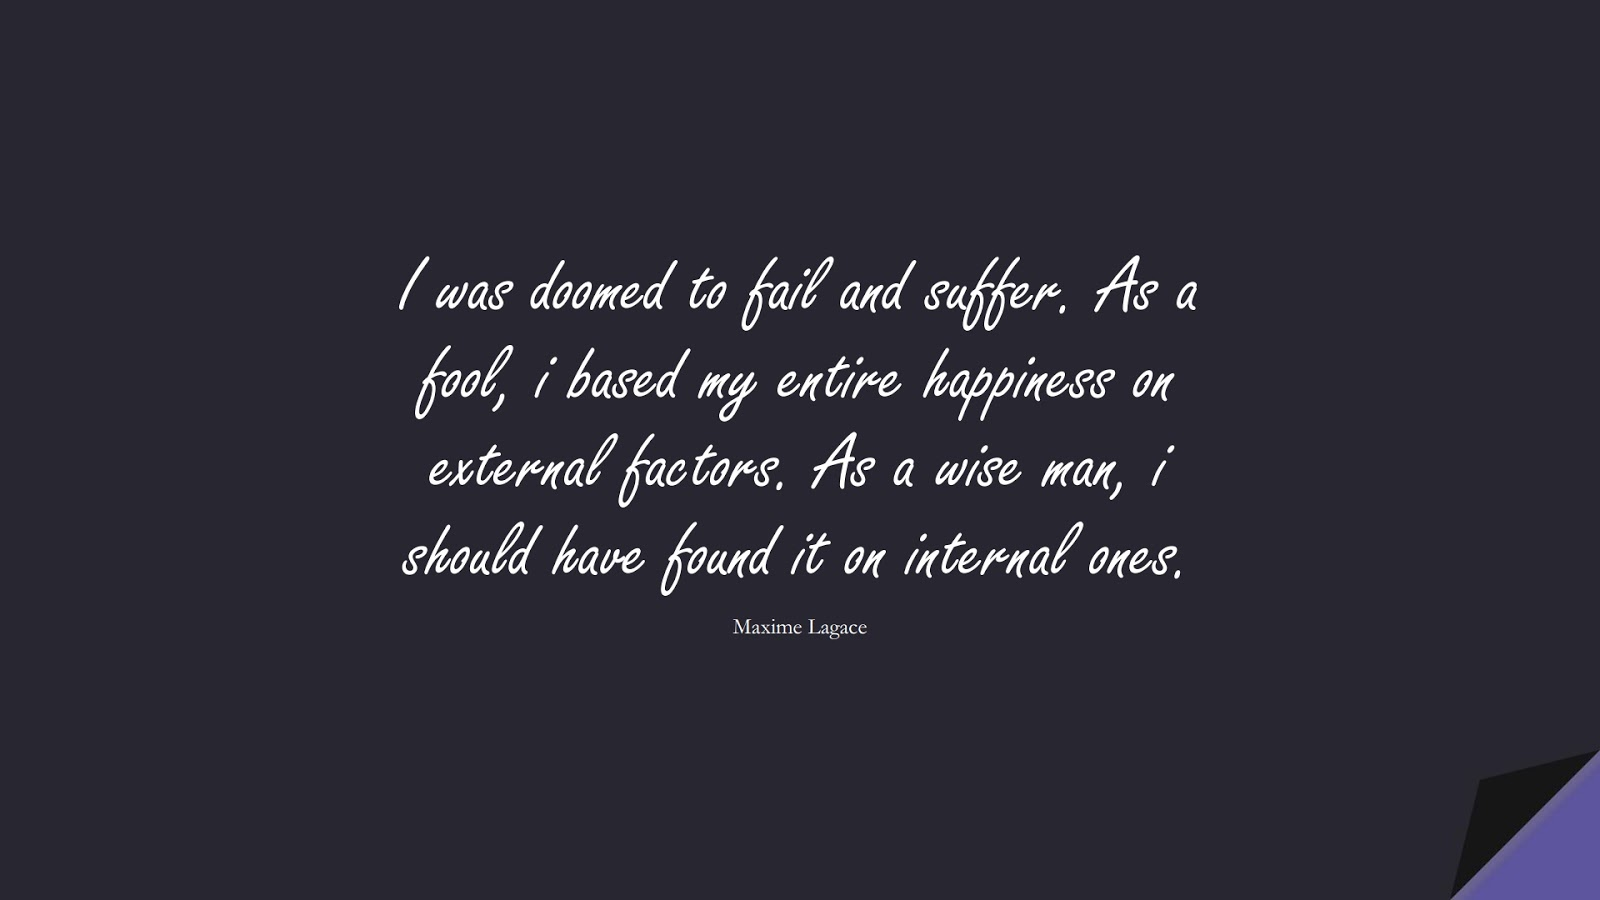 I was doomed to fail and suffer. As a fool, i based my entire happiness on external factors. As a wise man, i should have found it on internal ones. (Maxime Lagace);  #DepressionQuotes